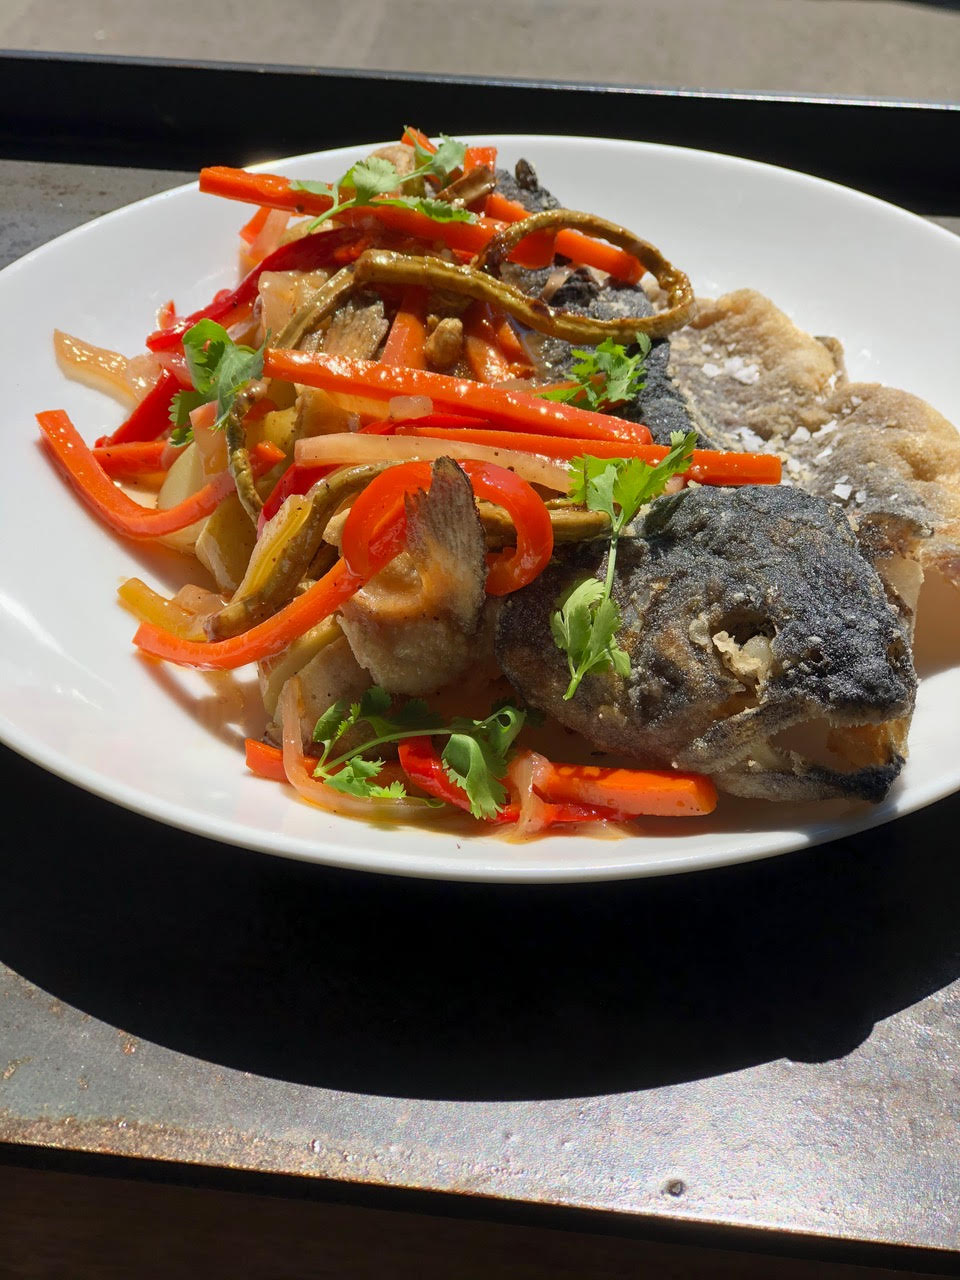 Trout escovitch with pickled peppers, onions, carrots, fiddlehead ferns, and stewed potatoes on a dish at Salare